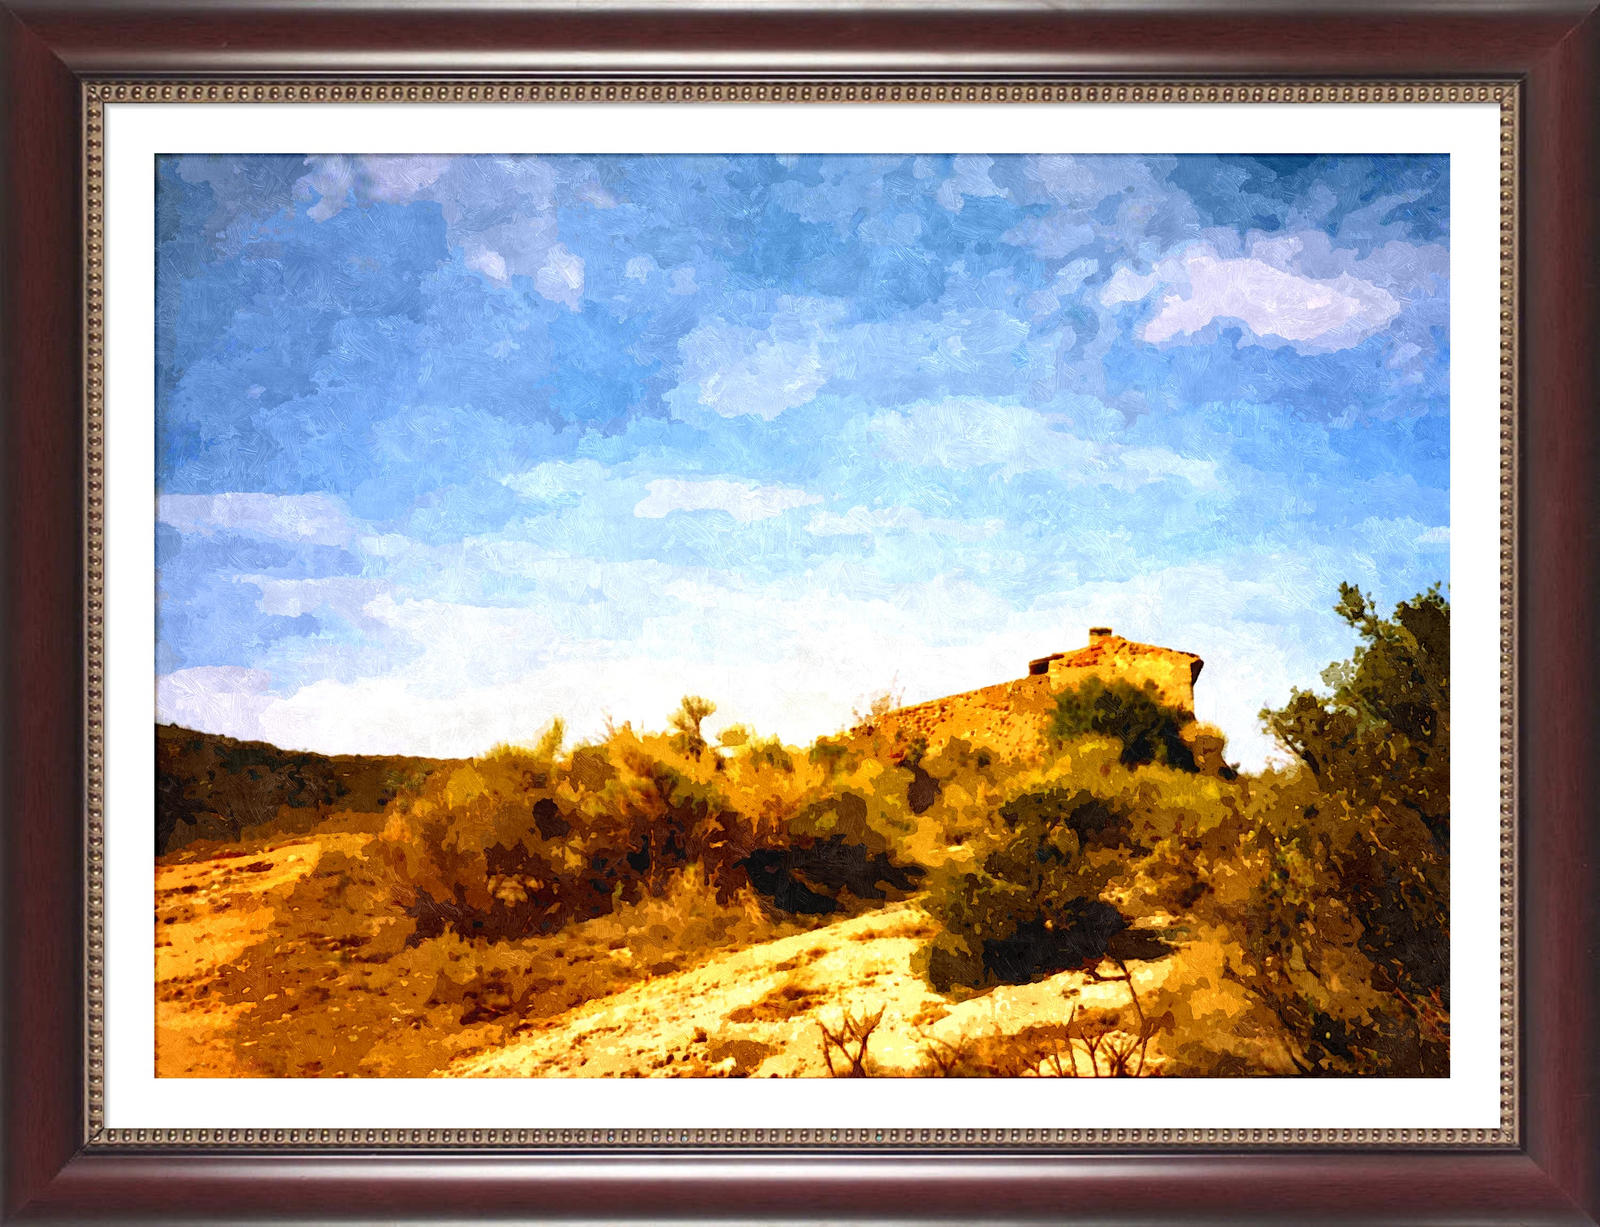 Paysage des bouches du rhone france by tityrus on deviantart for Bouches du rhon